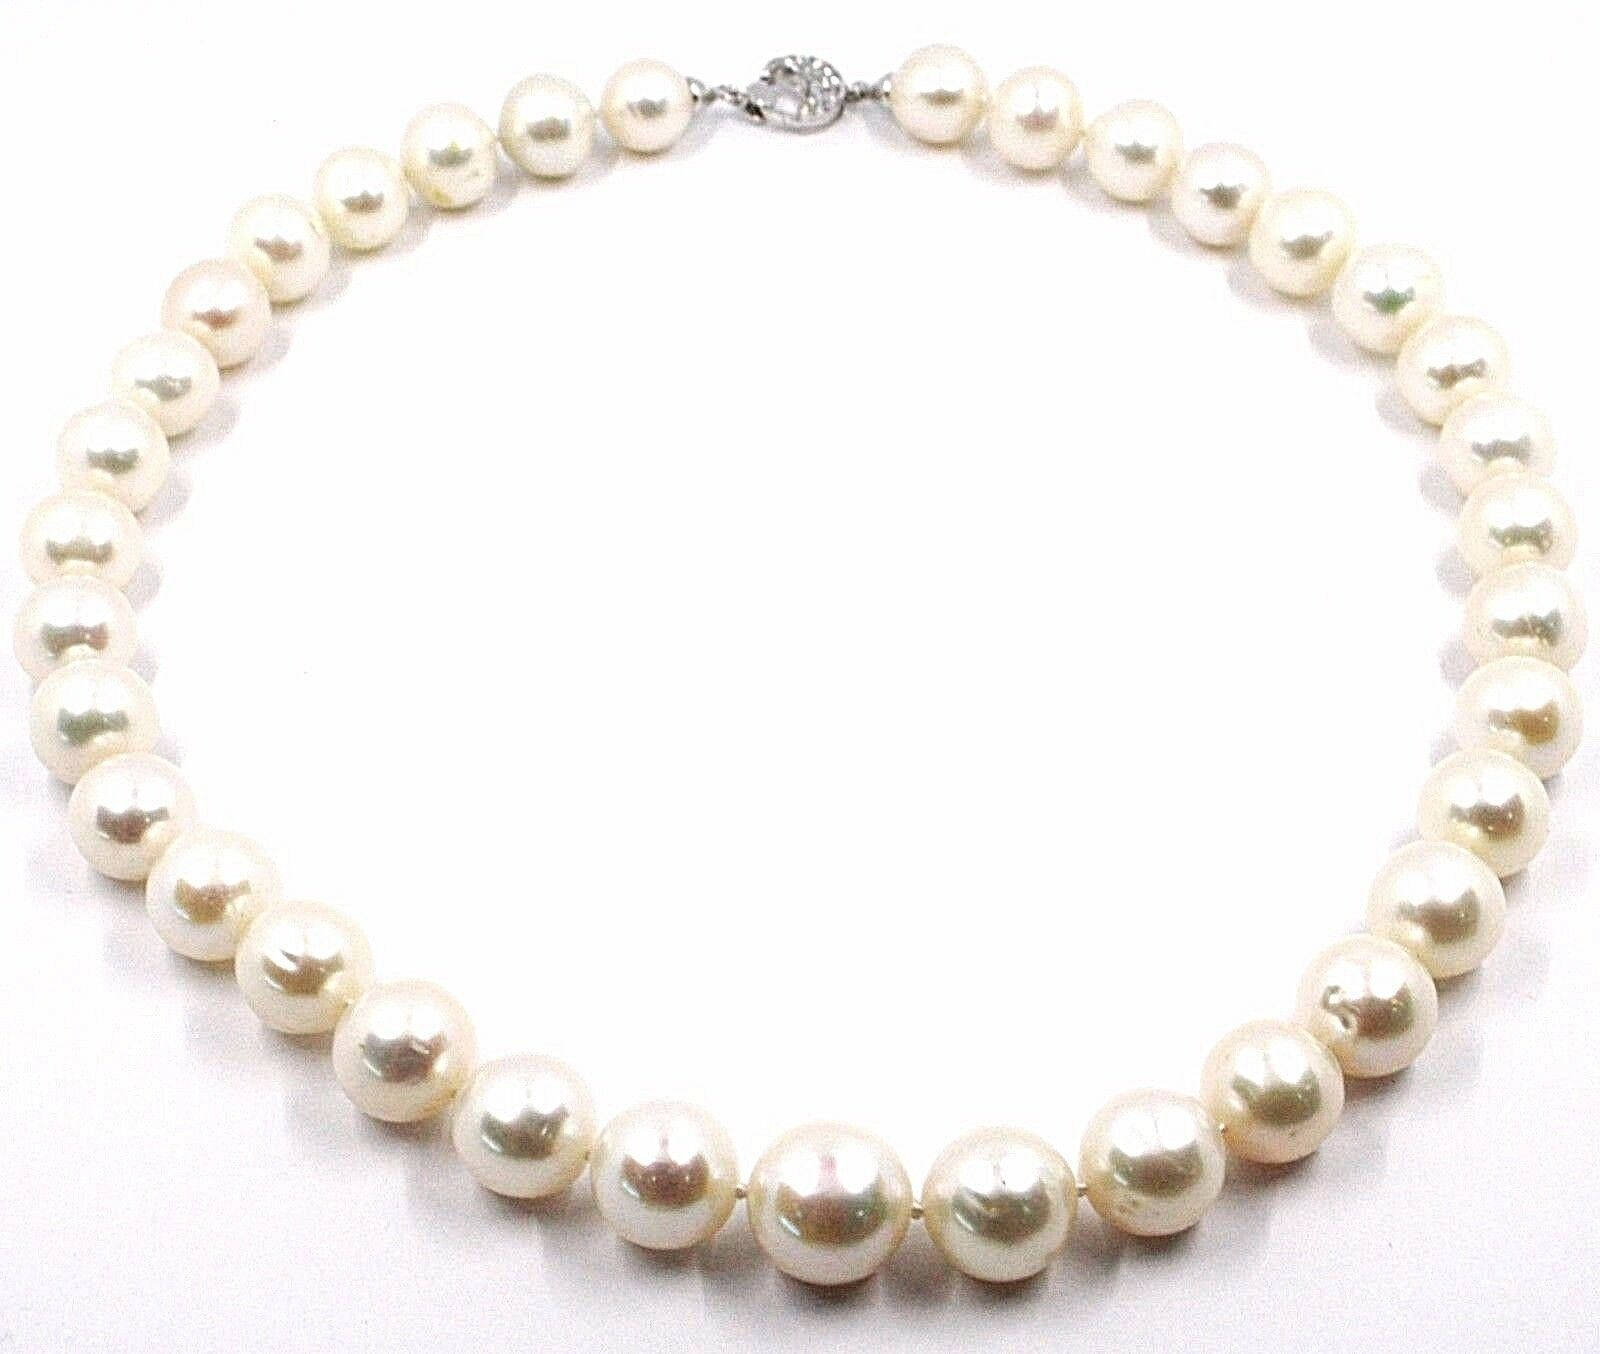 Necklace White Gold 18K, Zircon, Pearls Large 12 mm, White, Freshwater